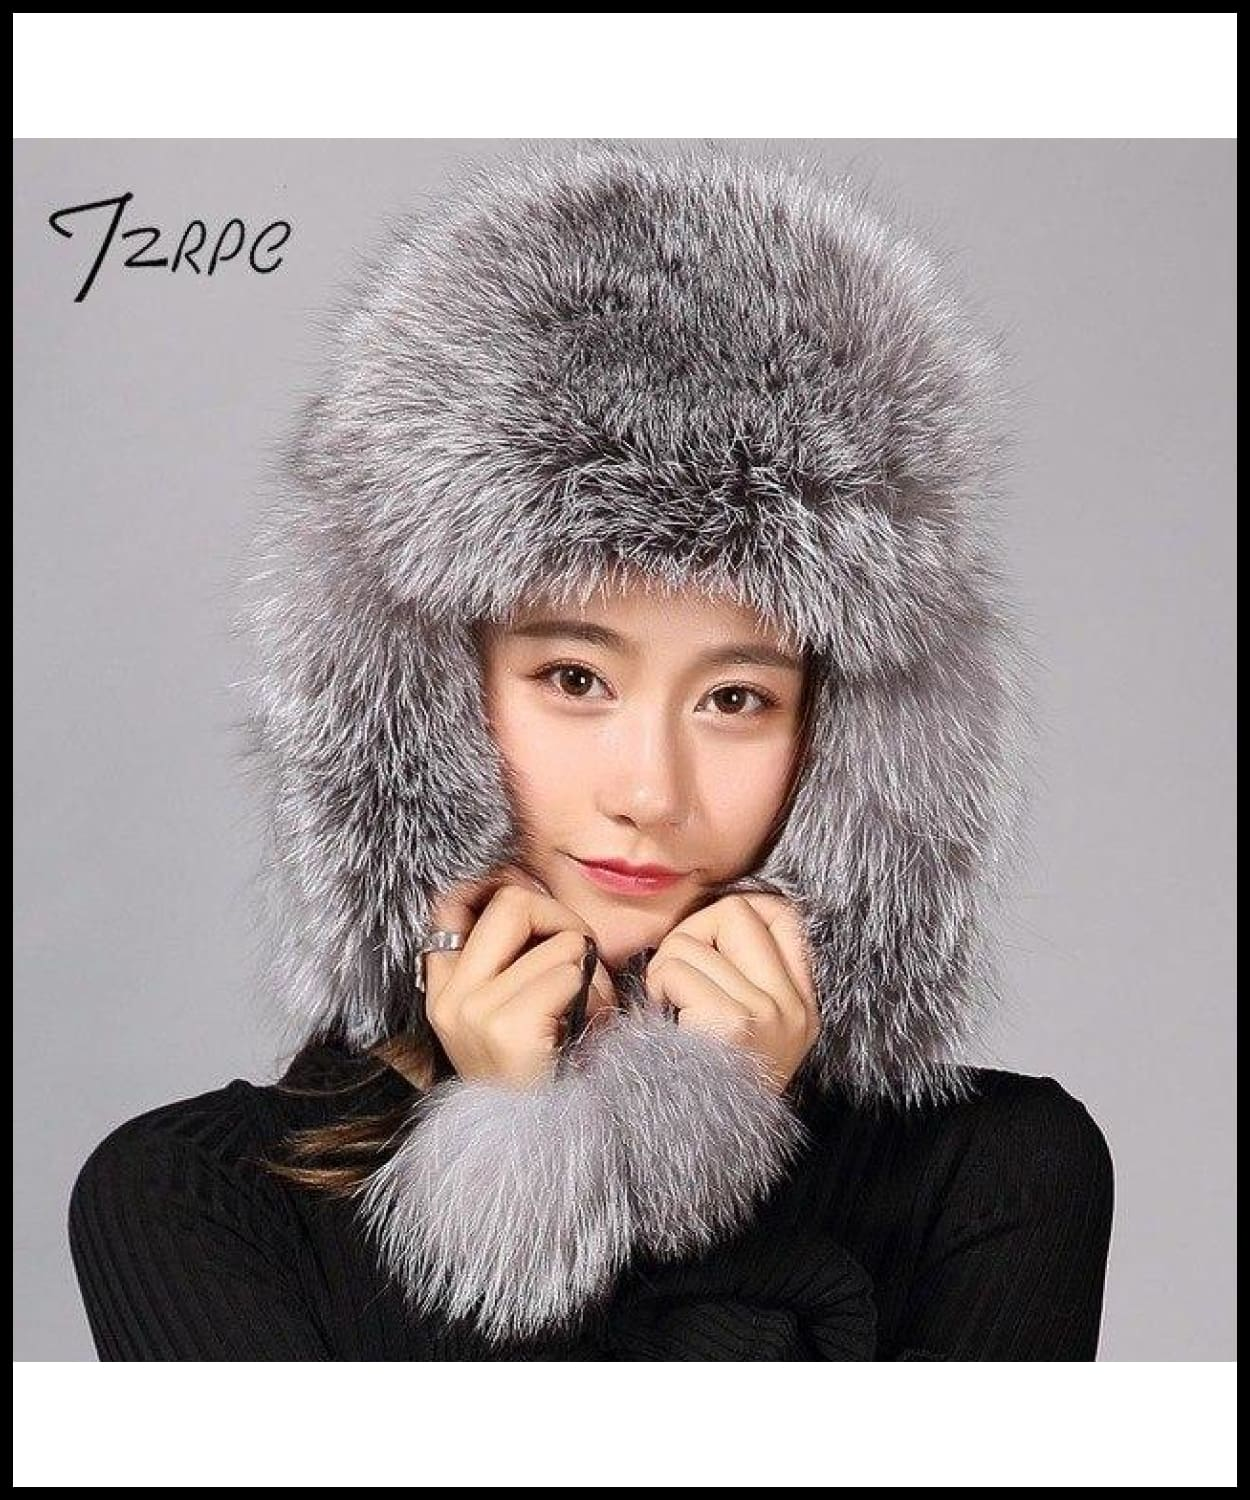 dd2eb227d91 ... Tzrpc Fur Hat For Women Natural Raccoon Fox Fur Russian Ushanka Hats  Winter Thick Warm Ears ...